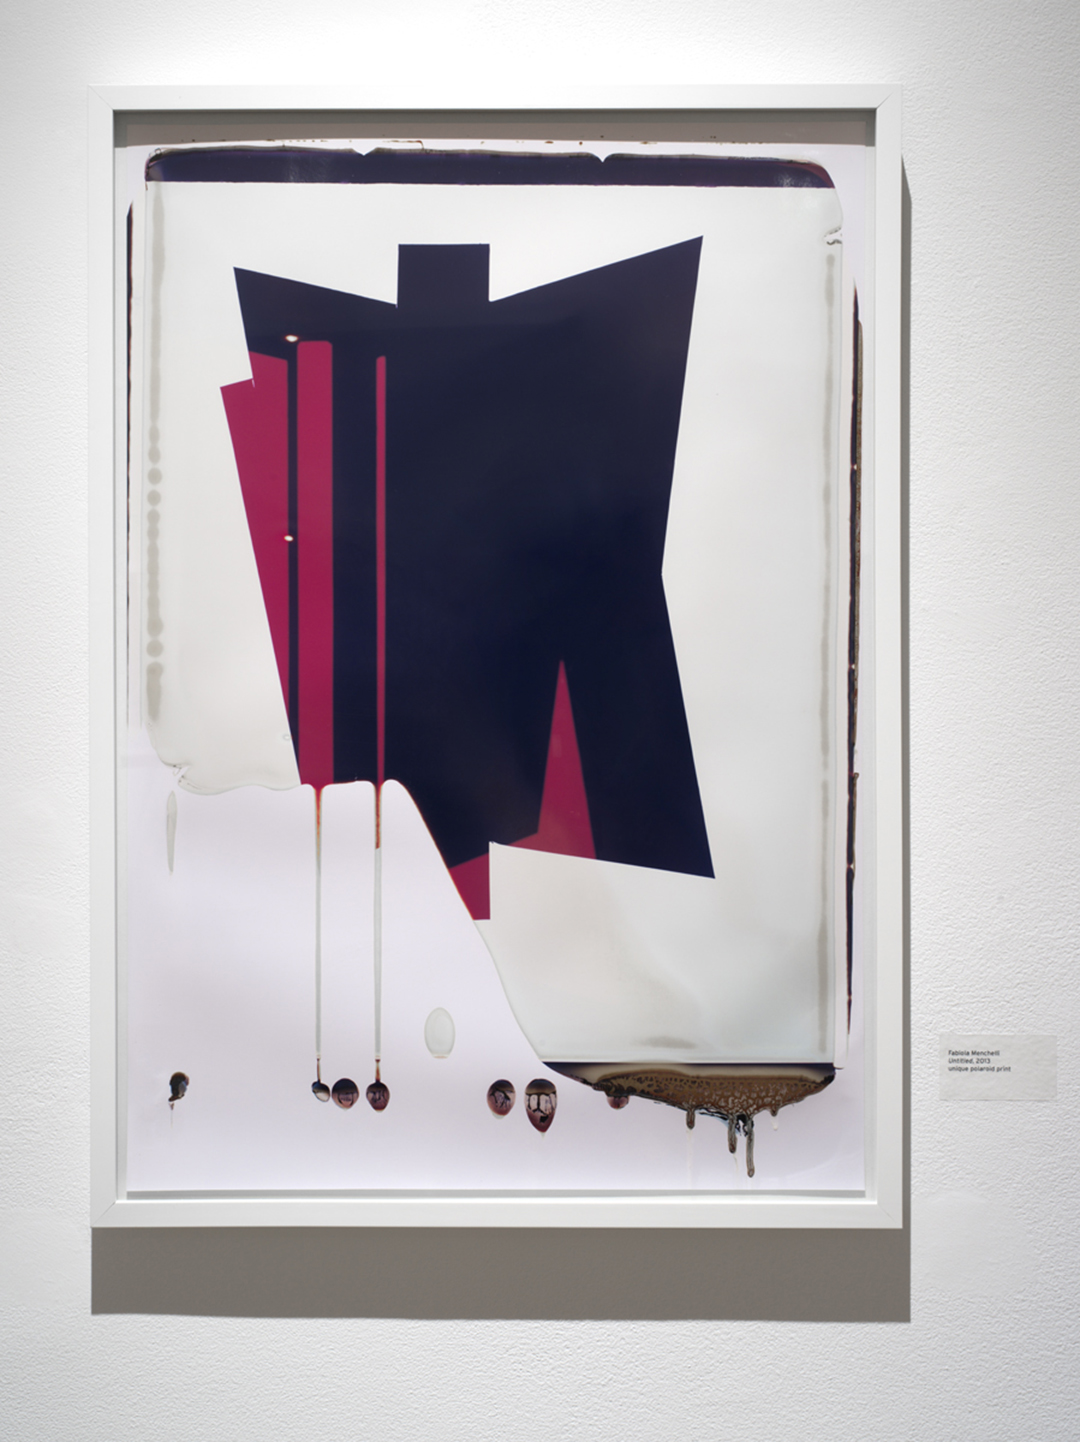 "Fabiola Menchelli, Dripping Red and black polaroid, 2013, 20 x 24"" Polaroid print"